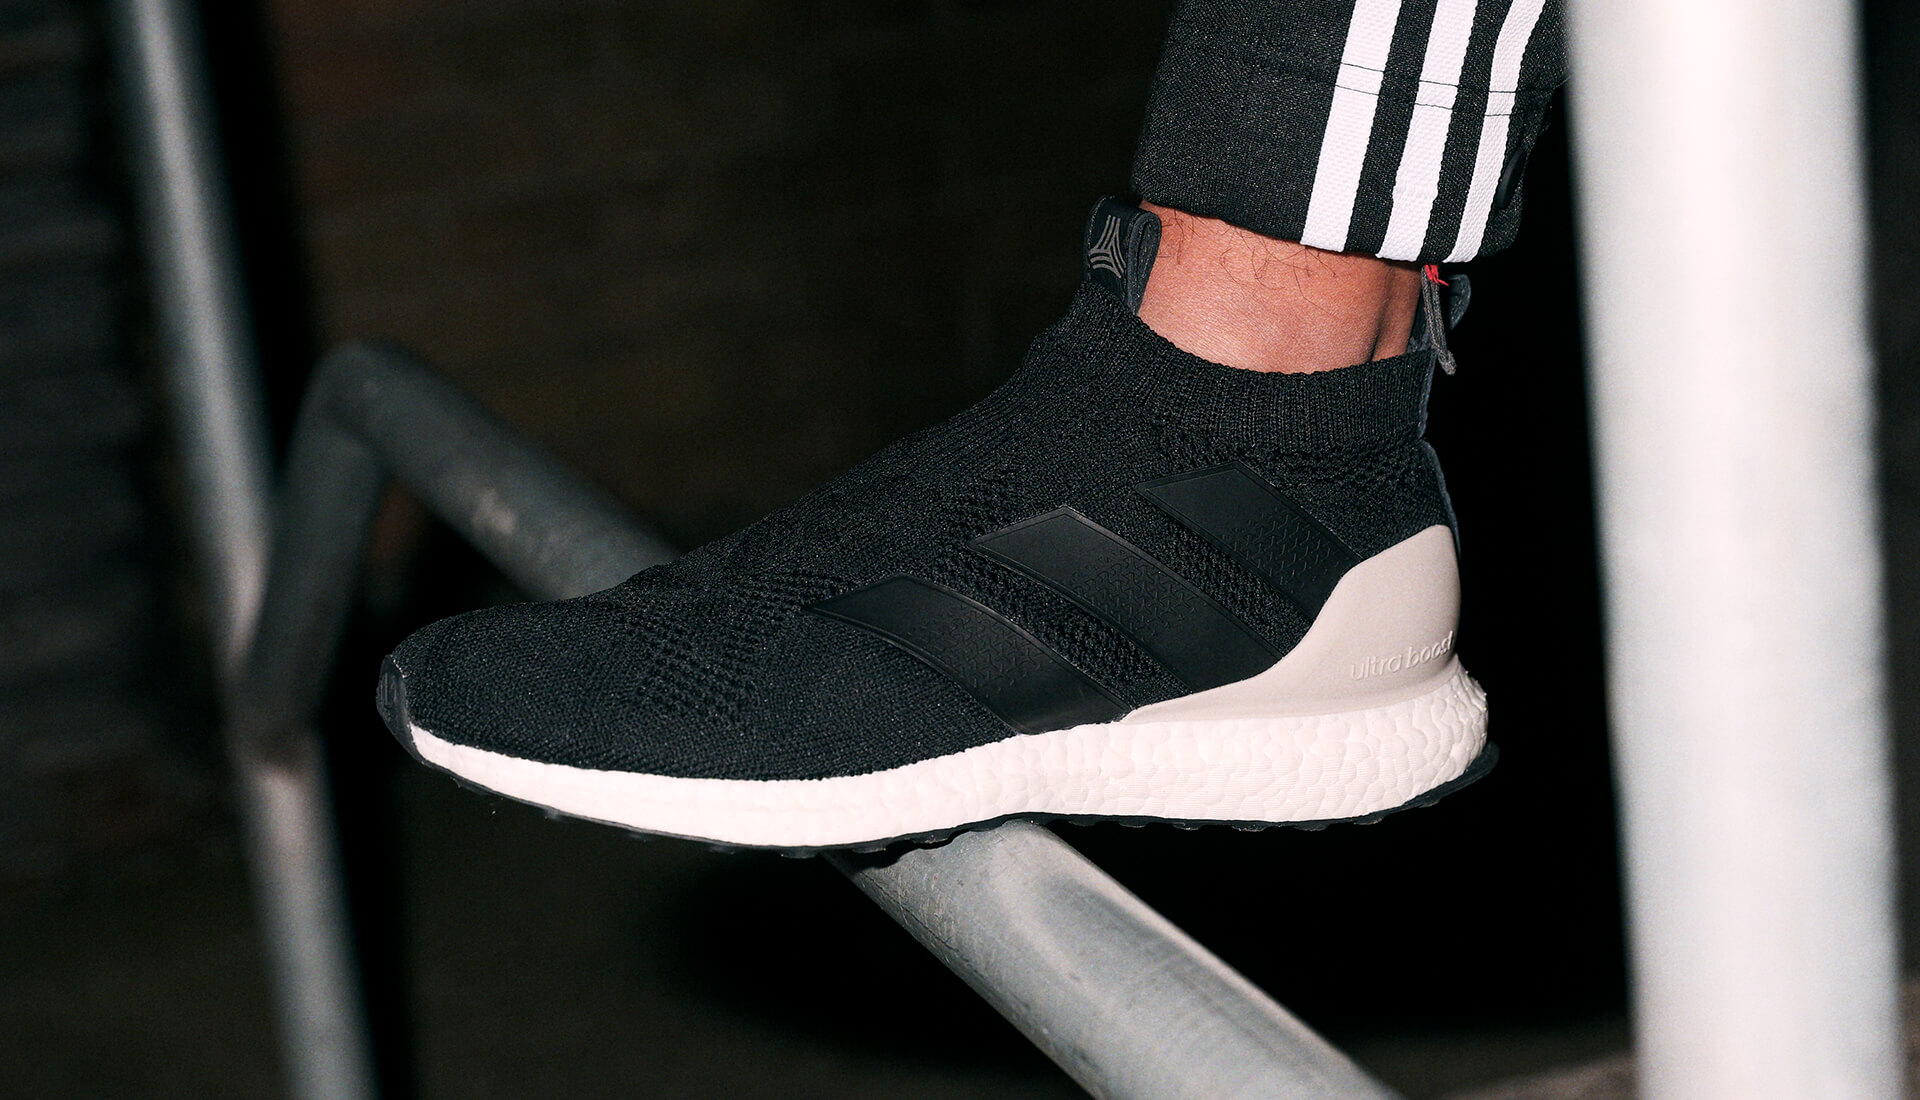 ffc6f96b06df1c ACE 16 UB Img2.jpg. Available in strict numbers as part of the adidas  Limited Collection